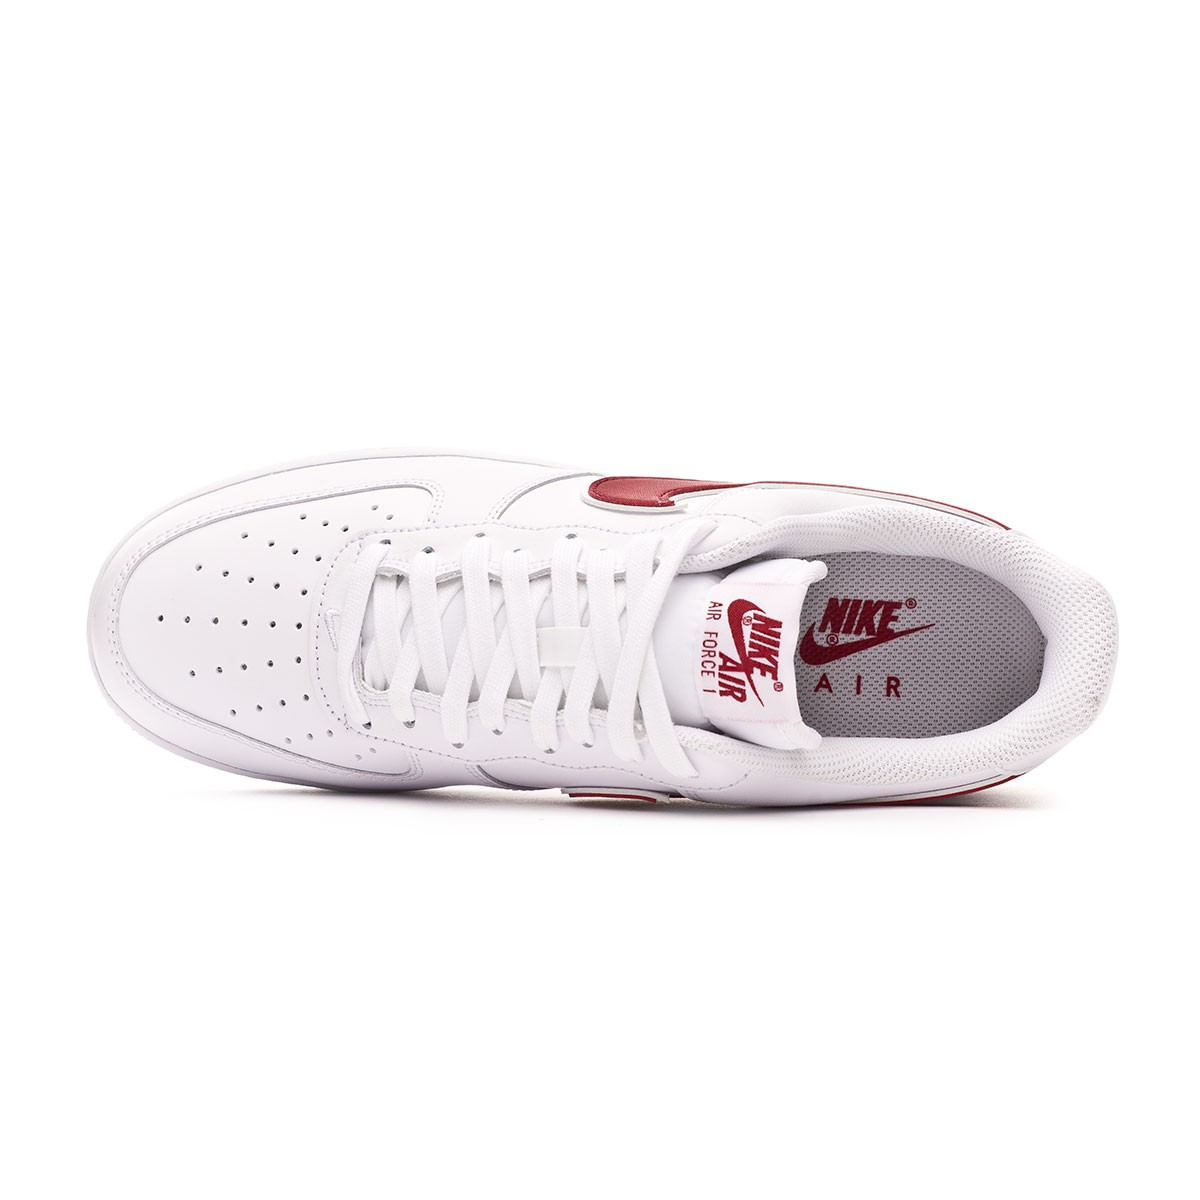 new styles 15c6e b5501 Baskets Nike Air Force 1  07 3 2019 White-Gym red - Boutique de football  Fútbol Emotion